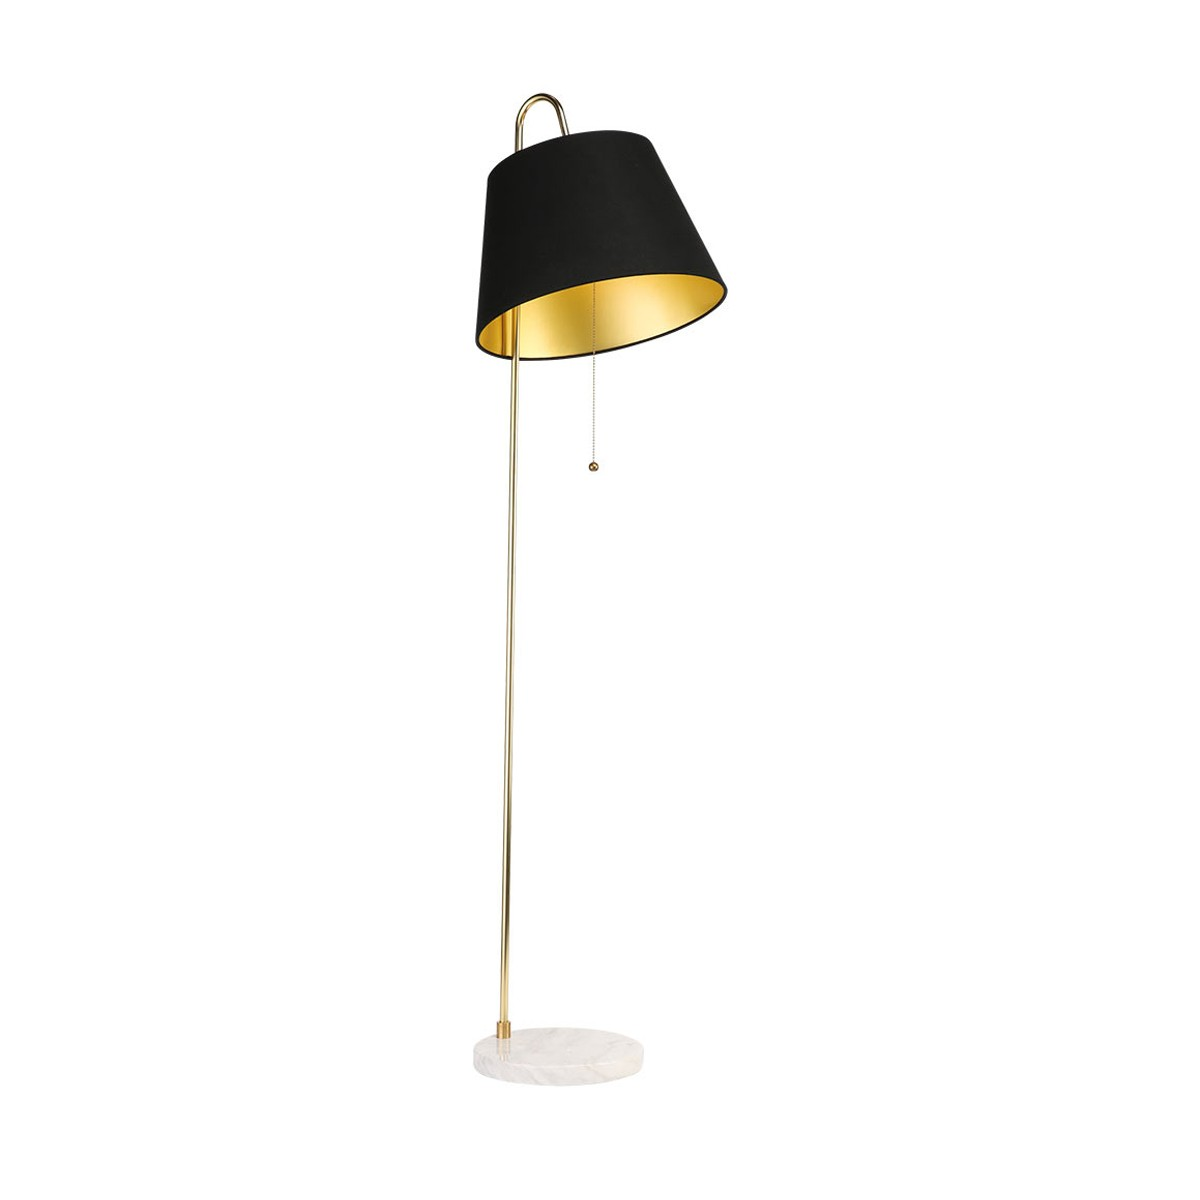 Luxor floor lamp with black shade